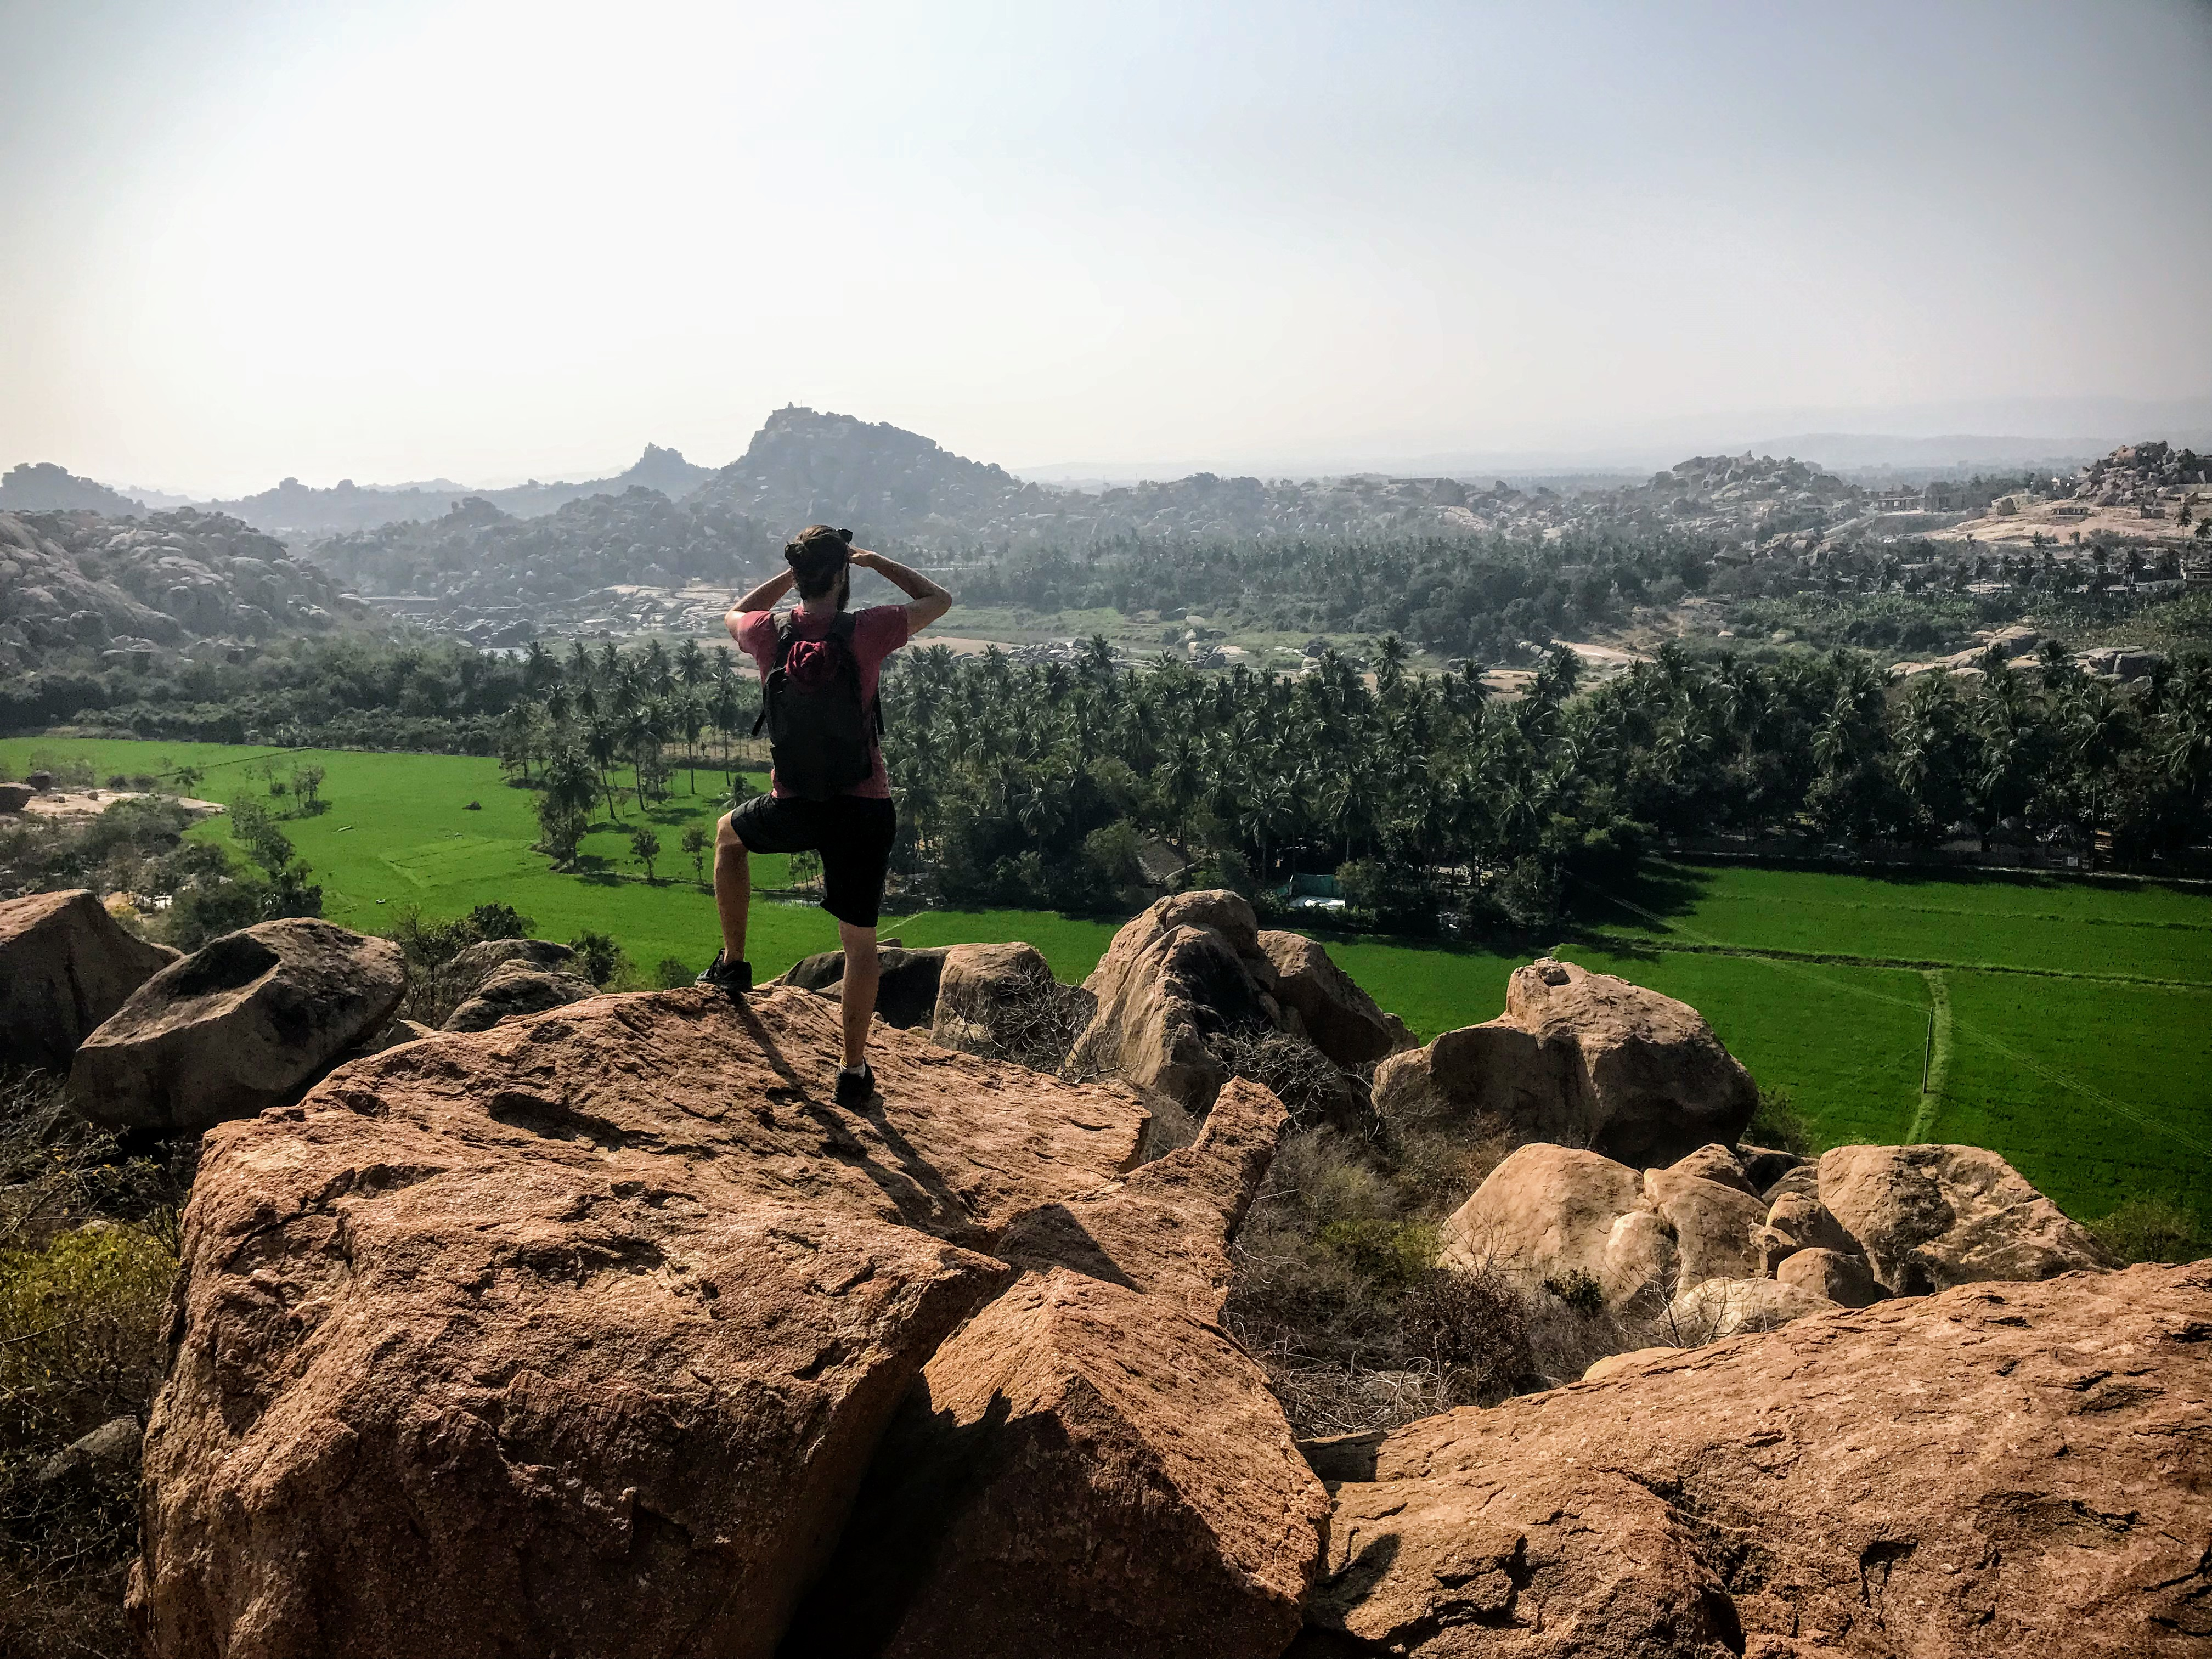 View from the boulders of the Tungabhadra River and Hampi, India